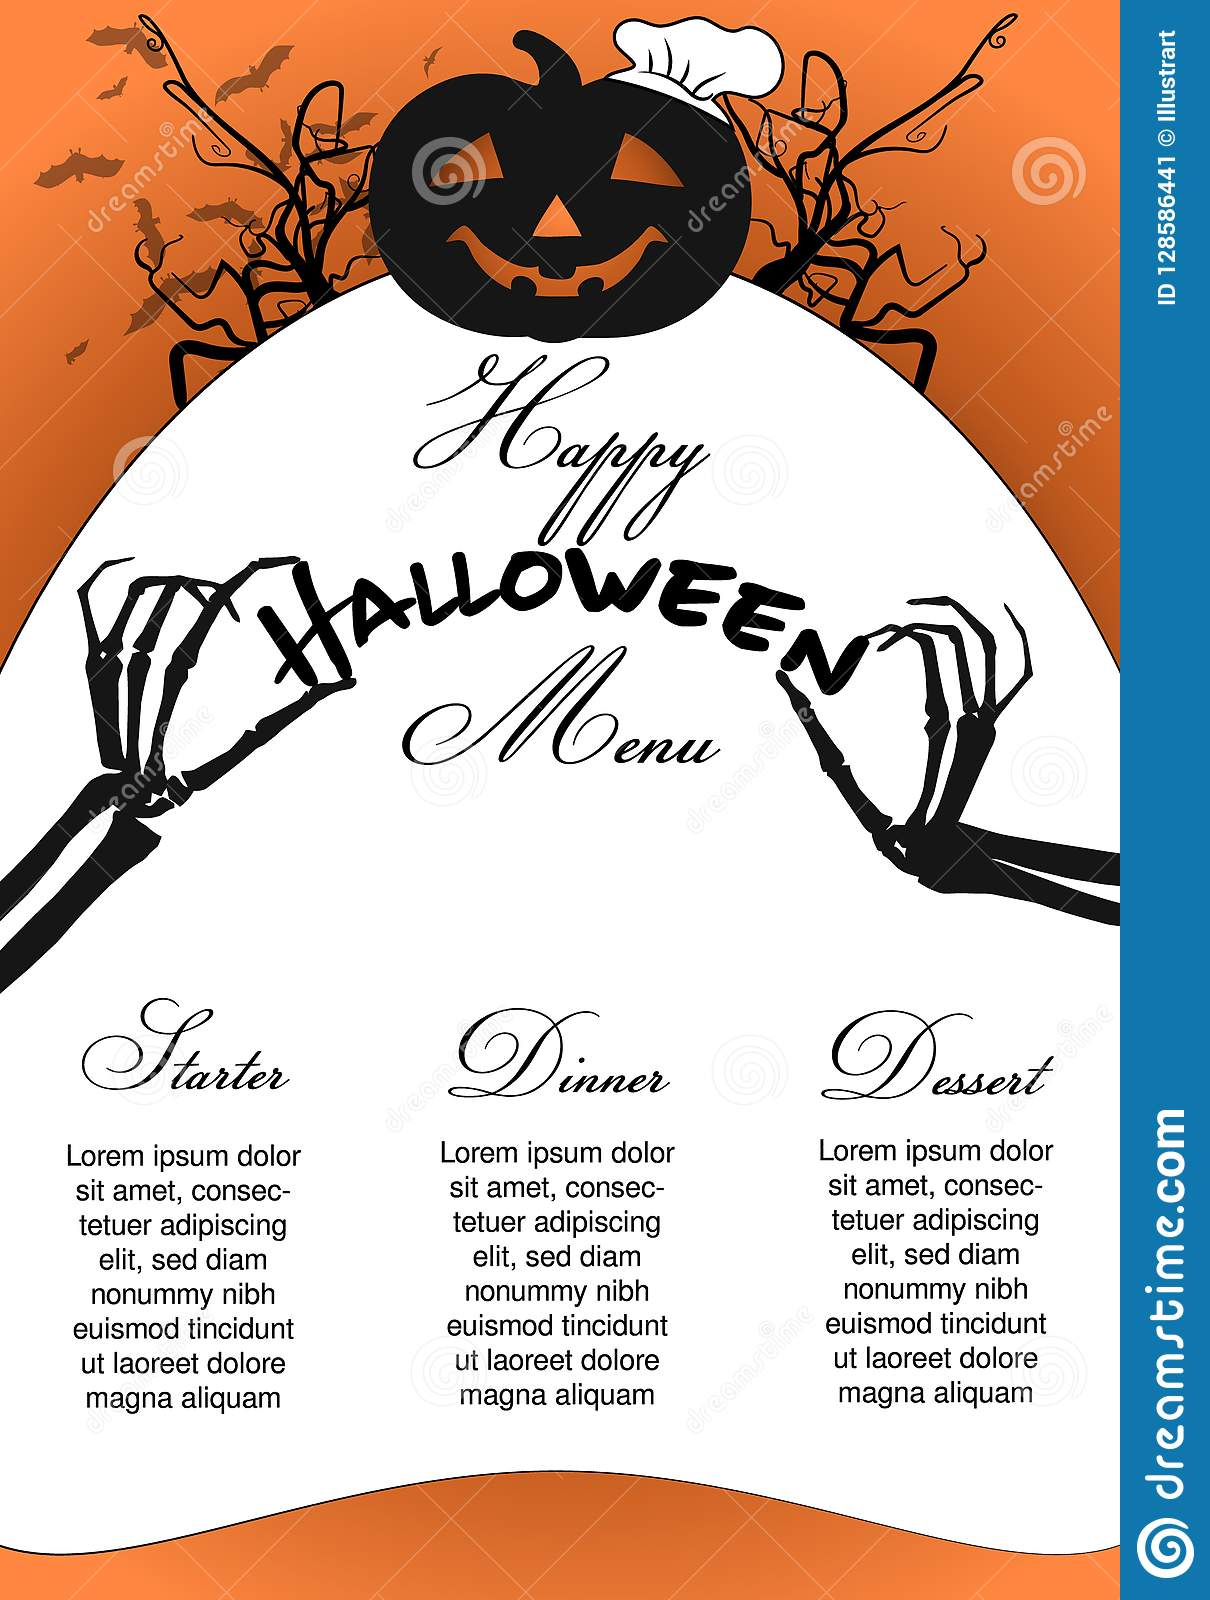 halloween menu template with pumpkin chef and skeleton hands stock